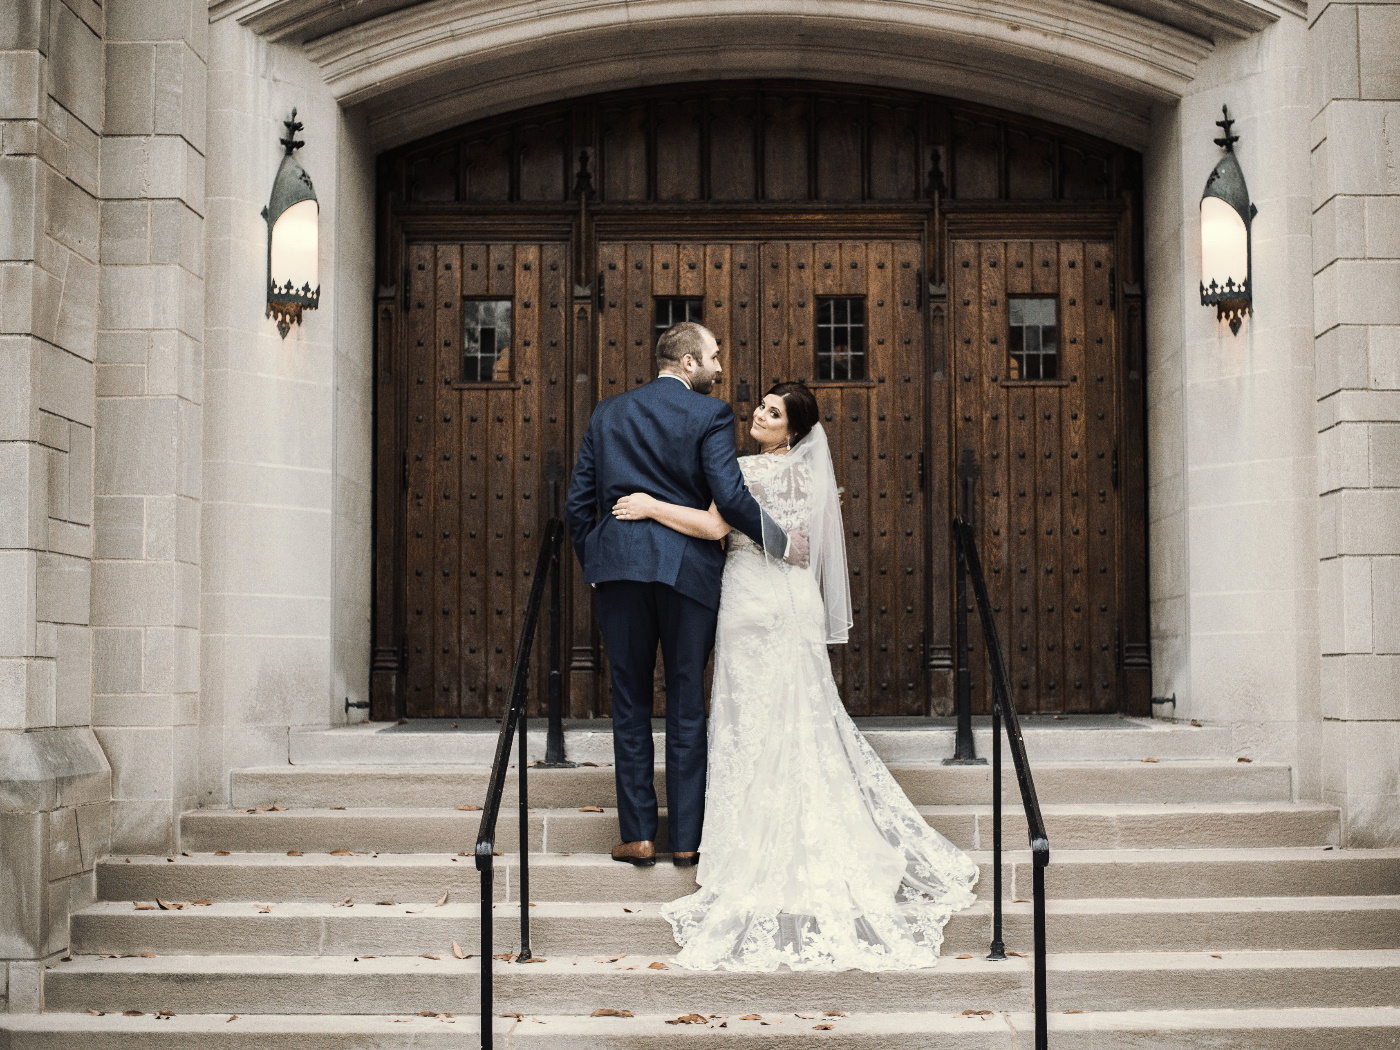 How To Plan For A Civil Or Courthouse Wedding: